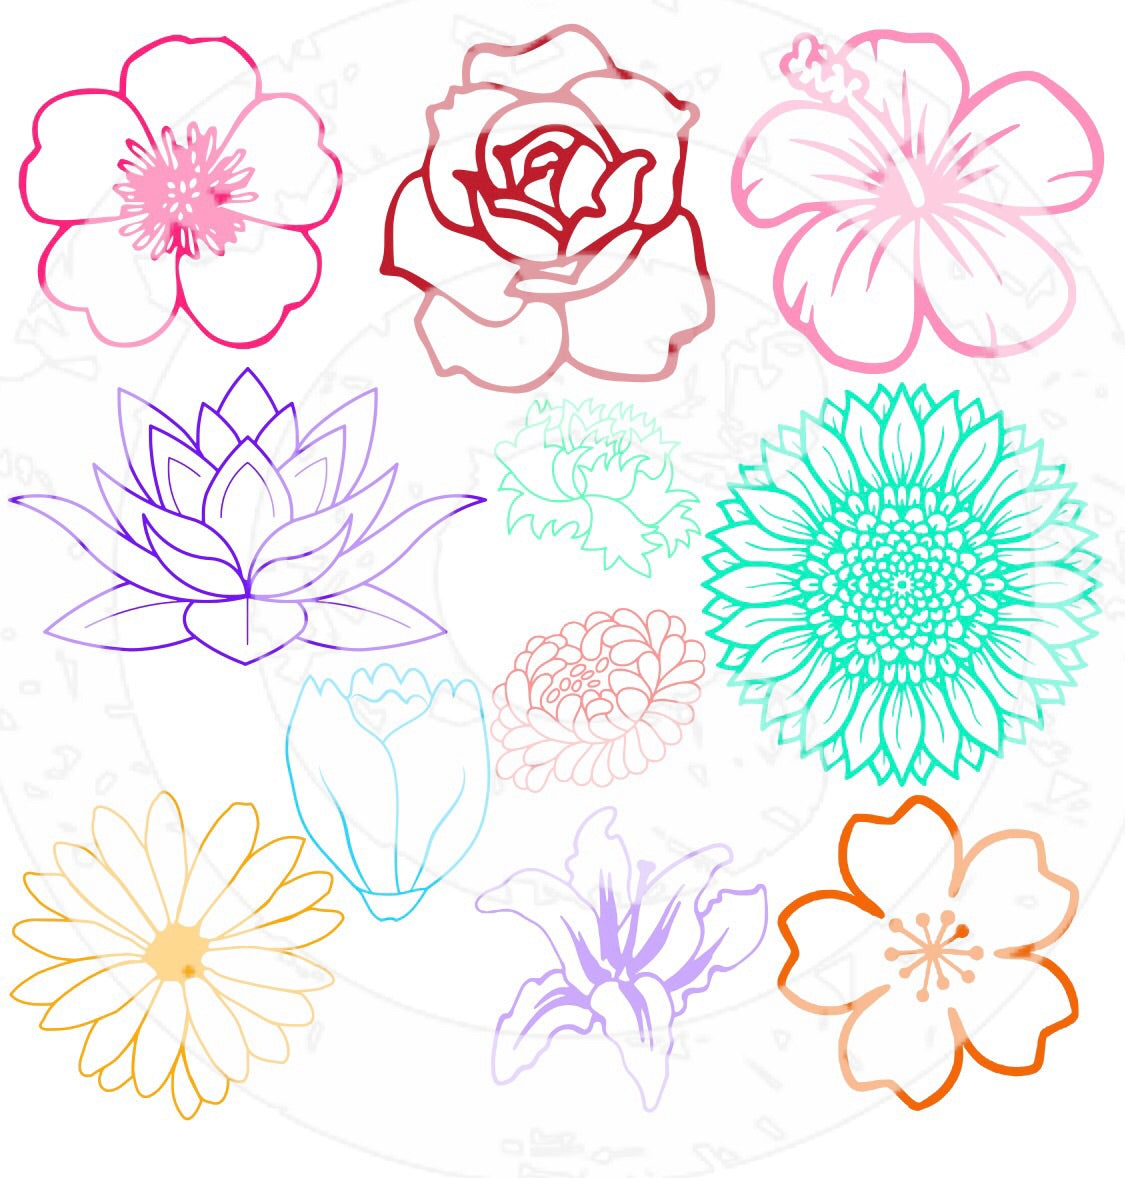 SVG Flowers SVG Bundle - JPIBlanks.com